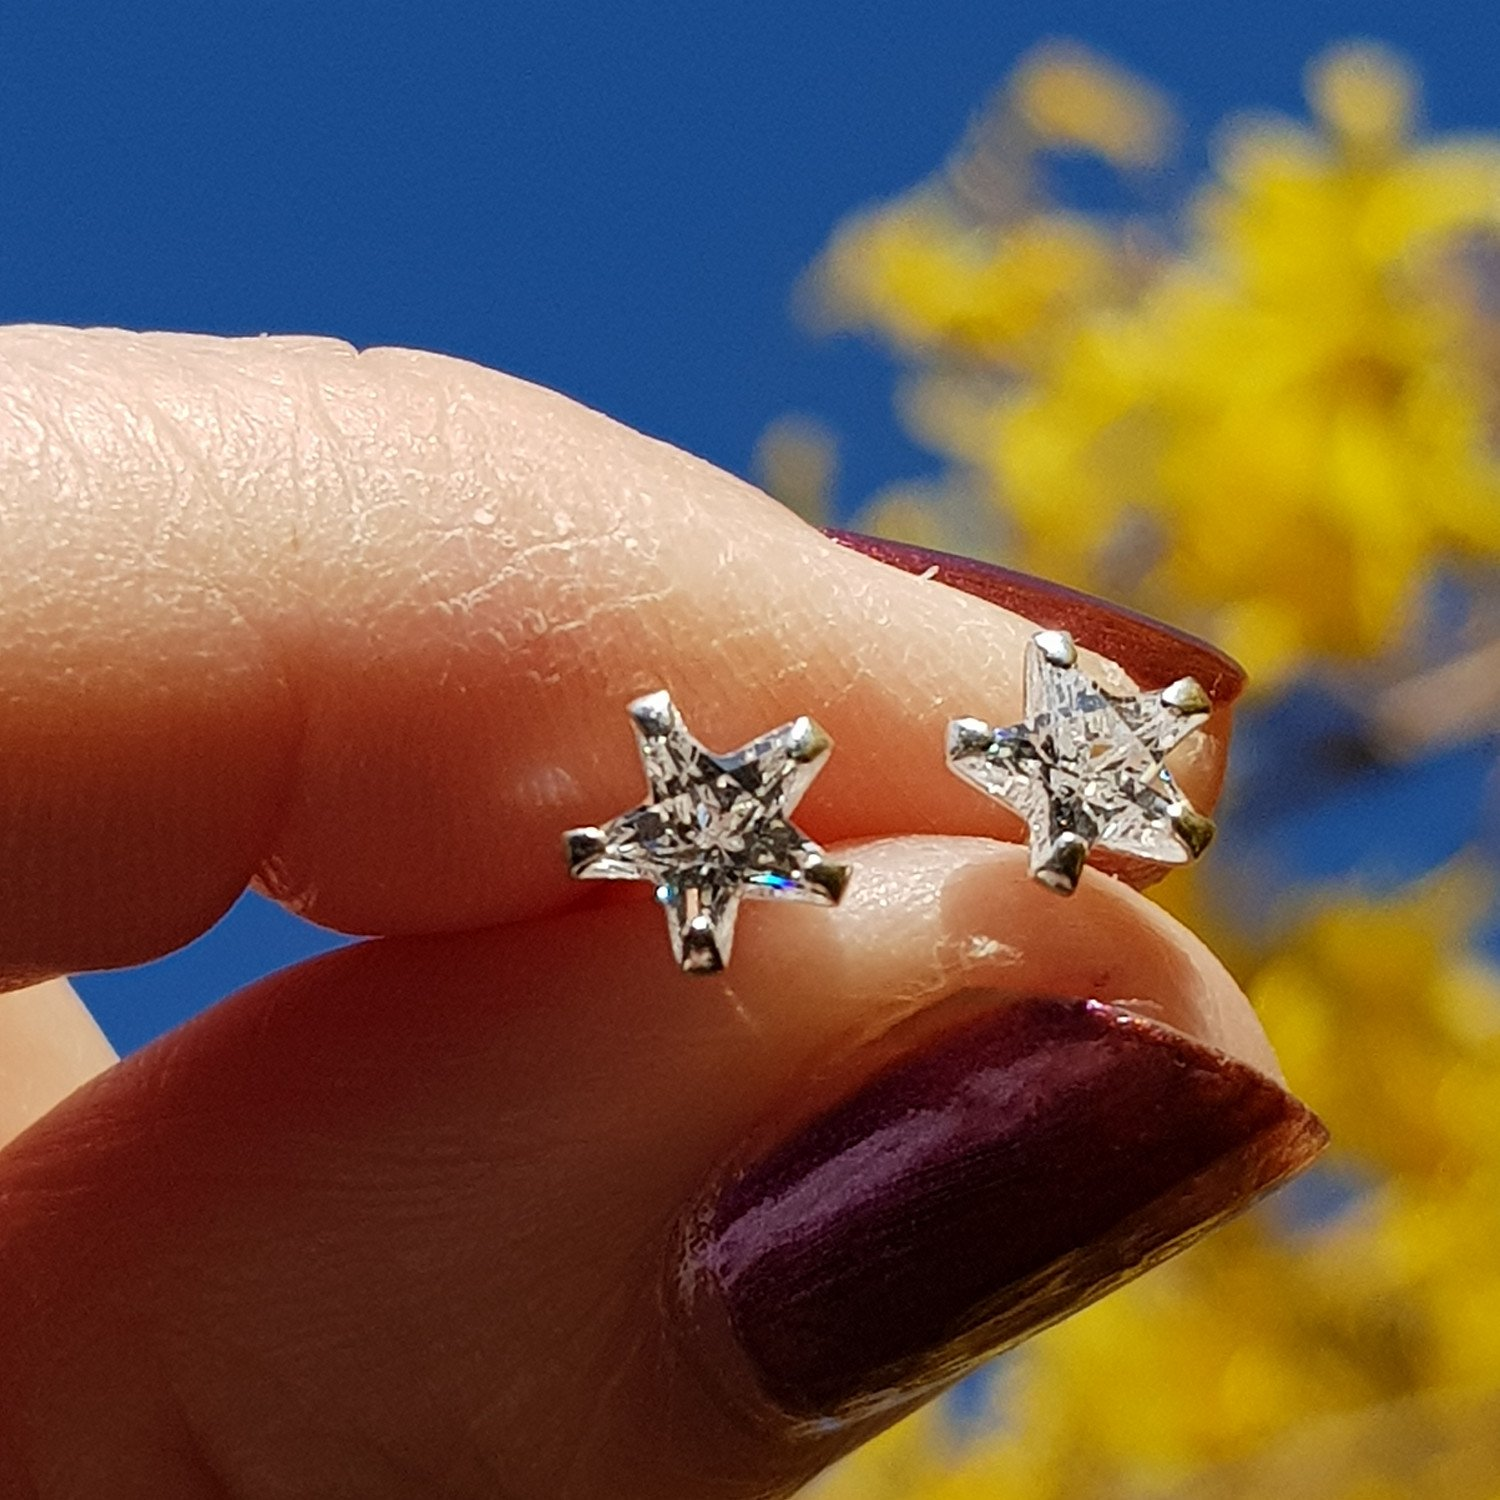 NEW IN - STUNNING SILVER STAR WITH STAR CUBIC ZIRCONIA STUD EARRINGS - ONLY £16 - FREE UK DELIVERY